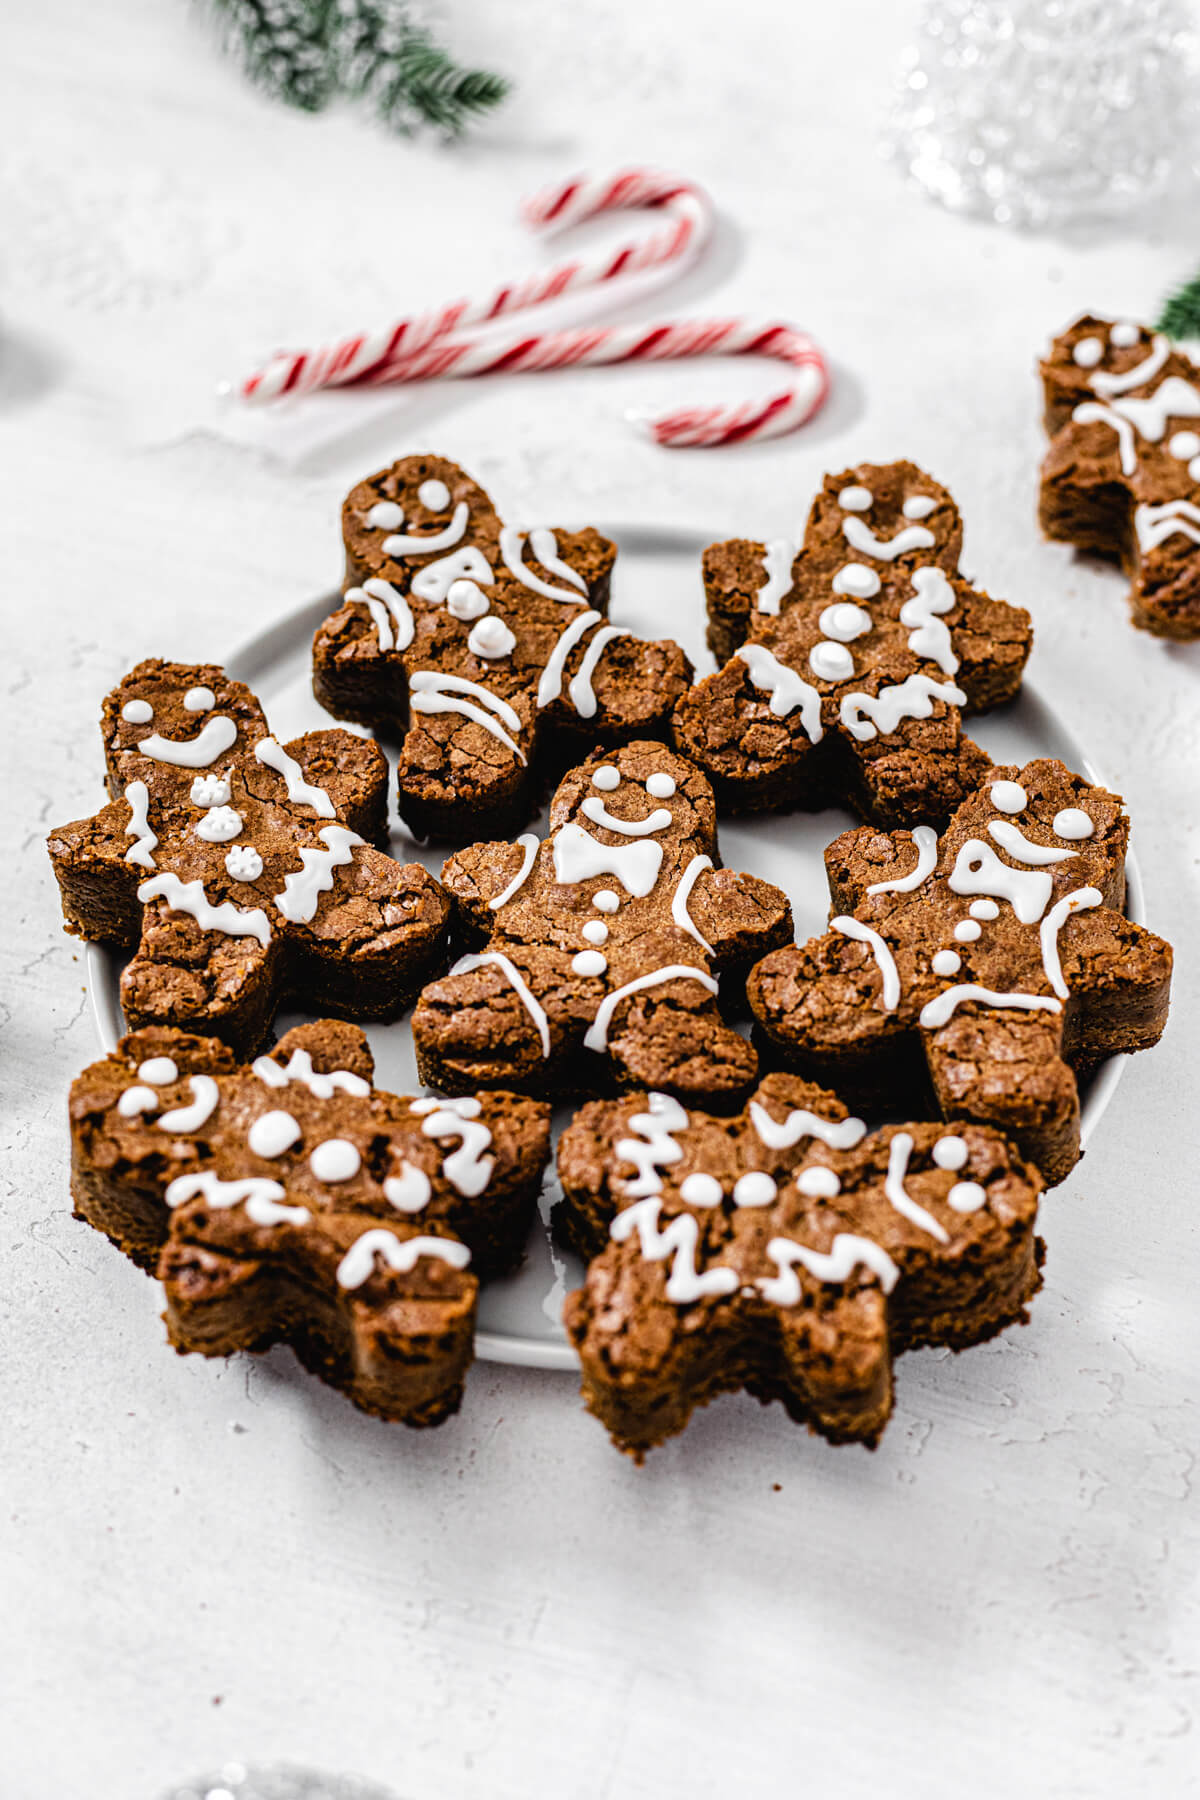 gingerbread men on a white plate